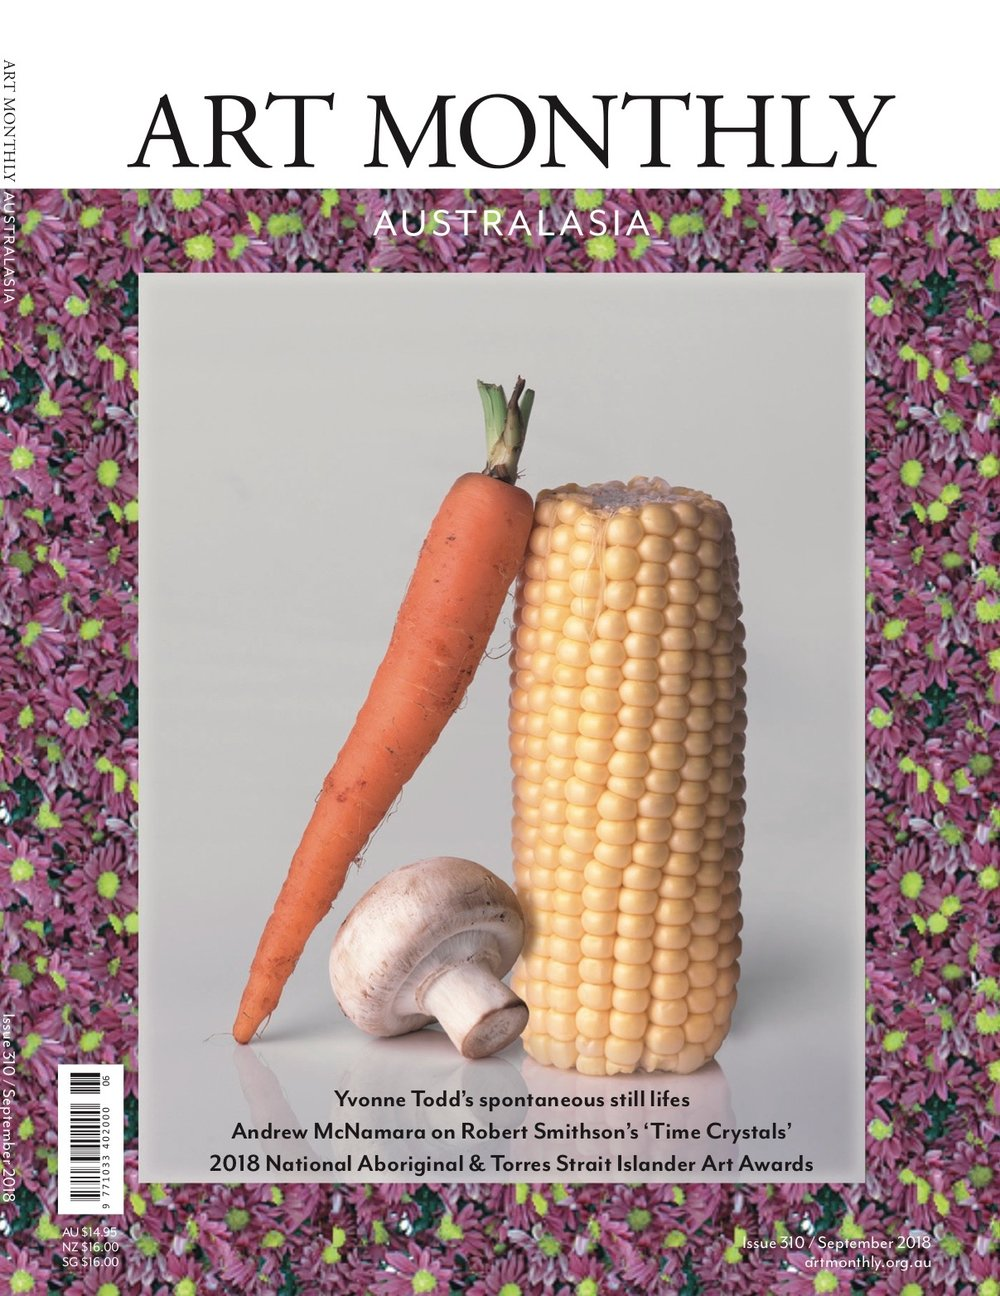 Issue 310 September 2018